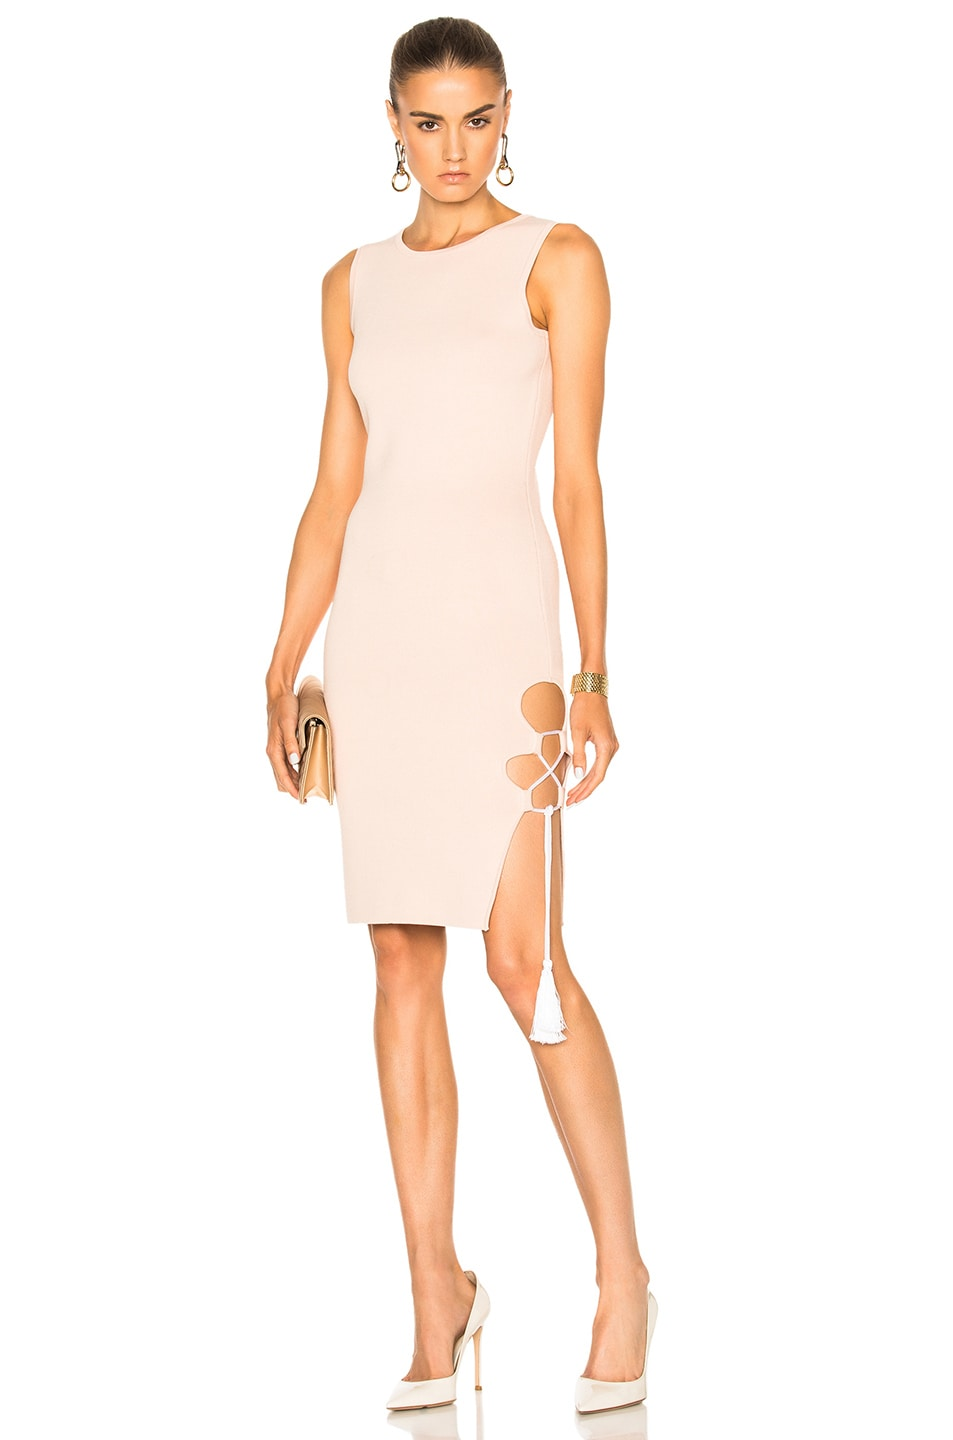 Image 1 of JONATHAN SIMKHAI for FWRD Knit Lace-up Dress in Nude